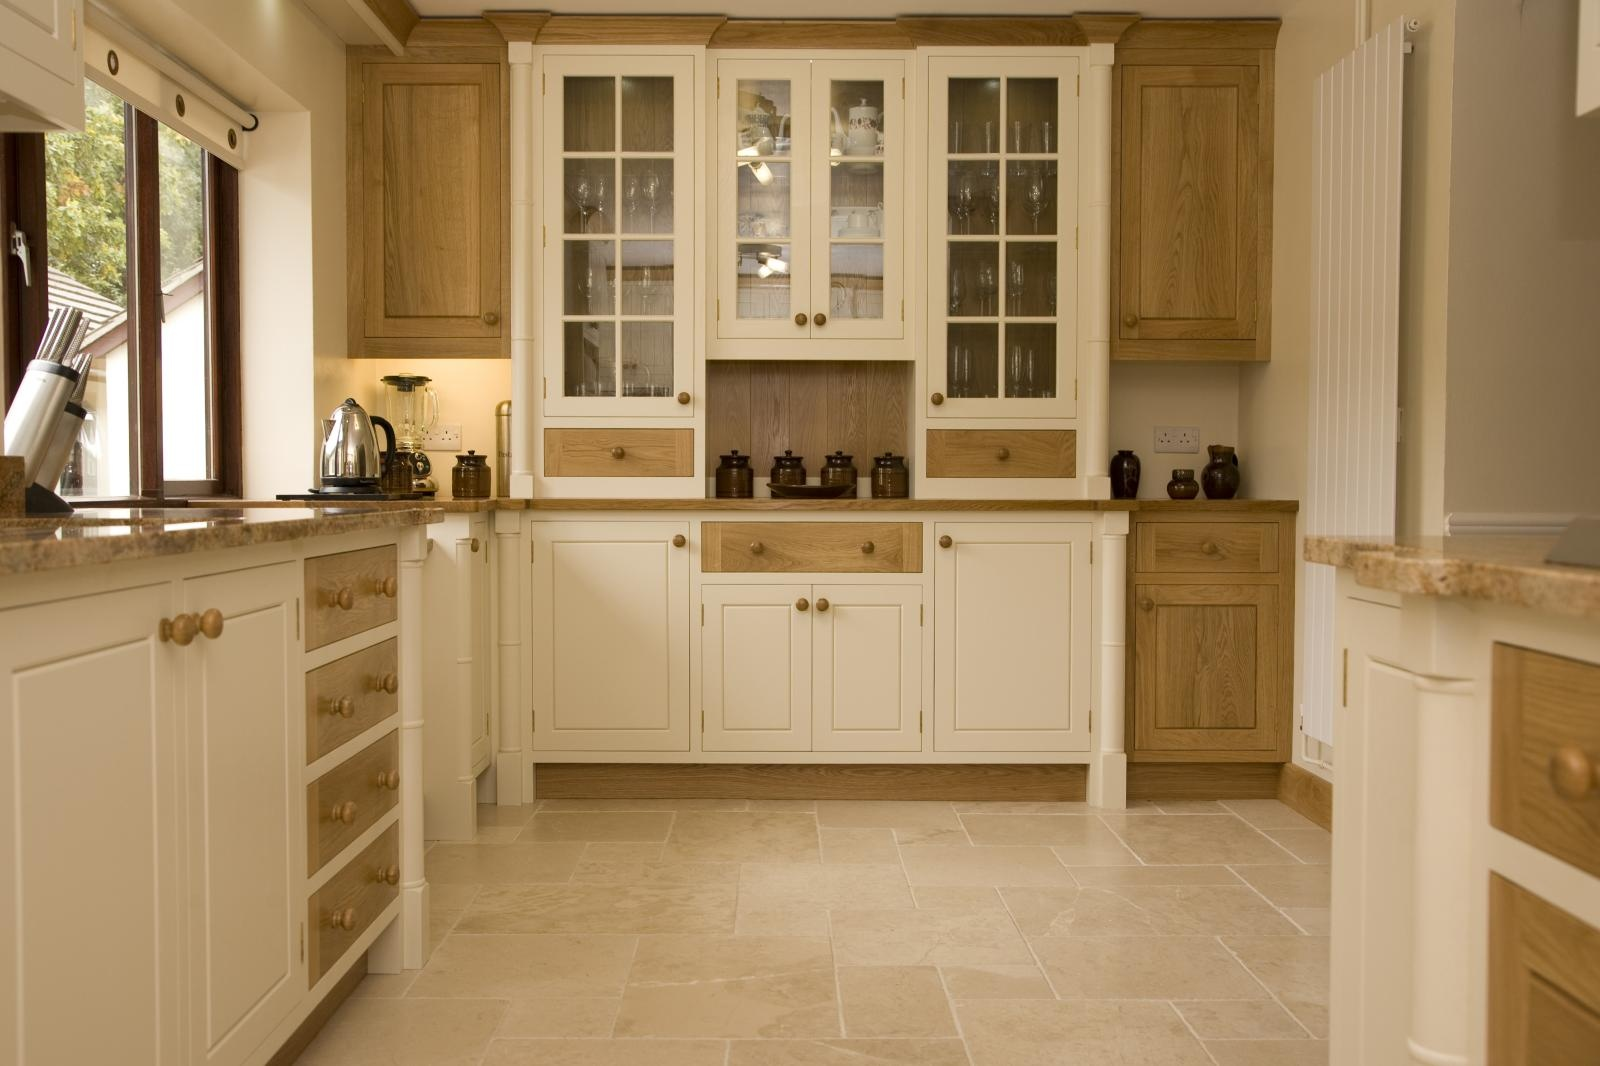 187 Painted Oak Kitchen Llanrhystud